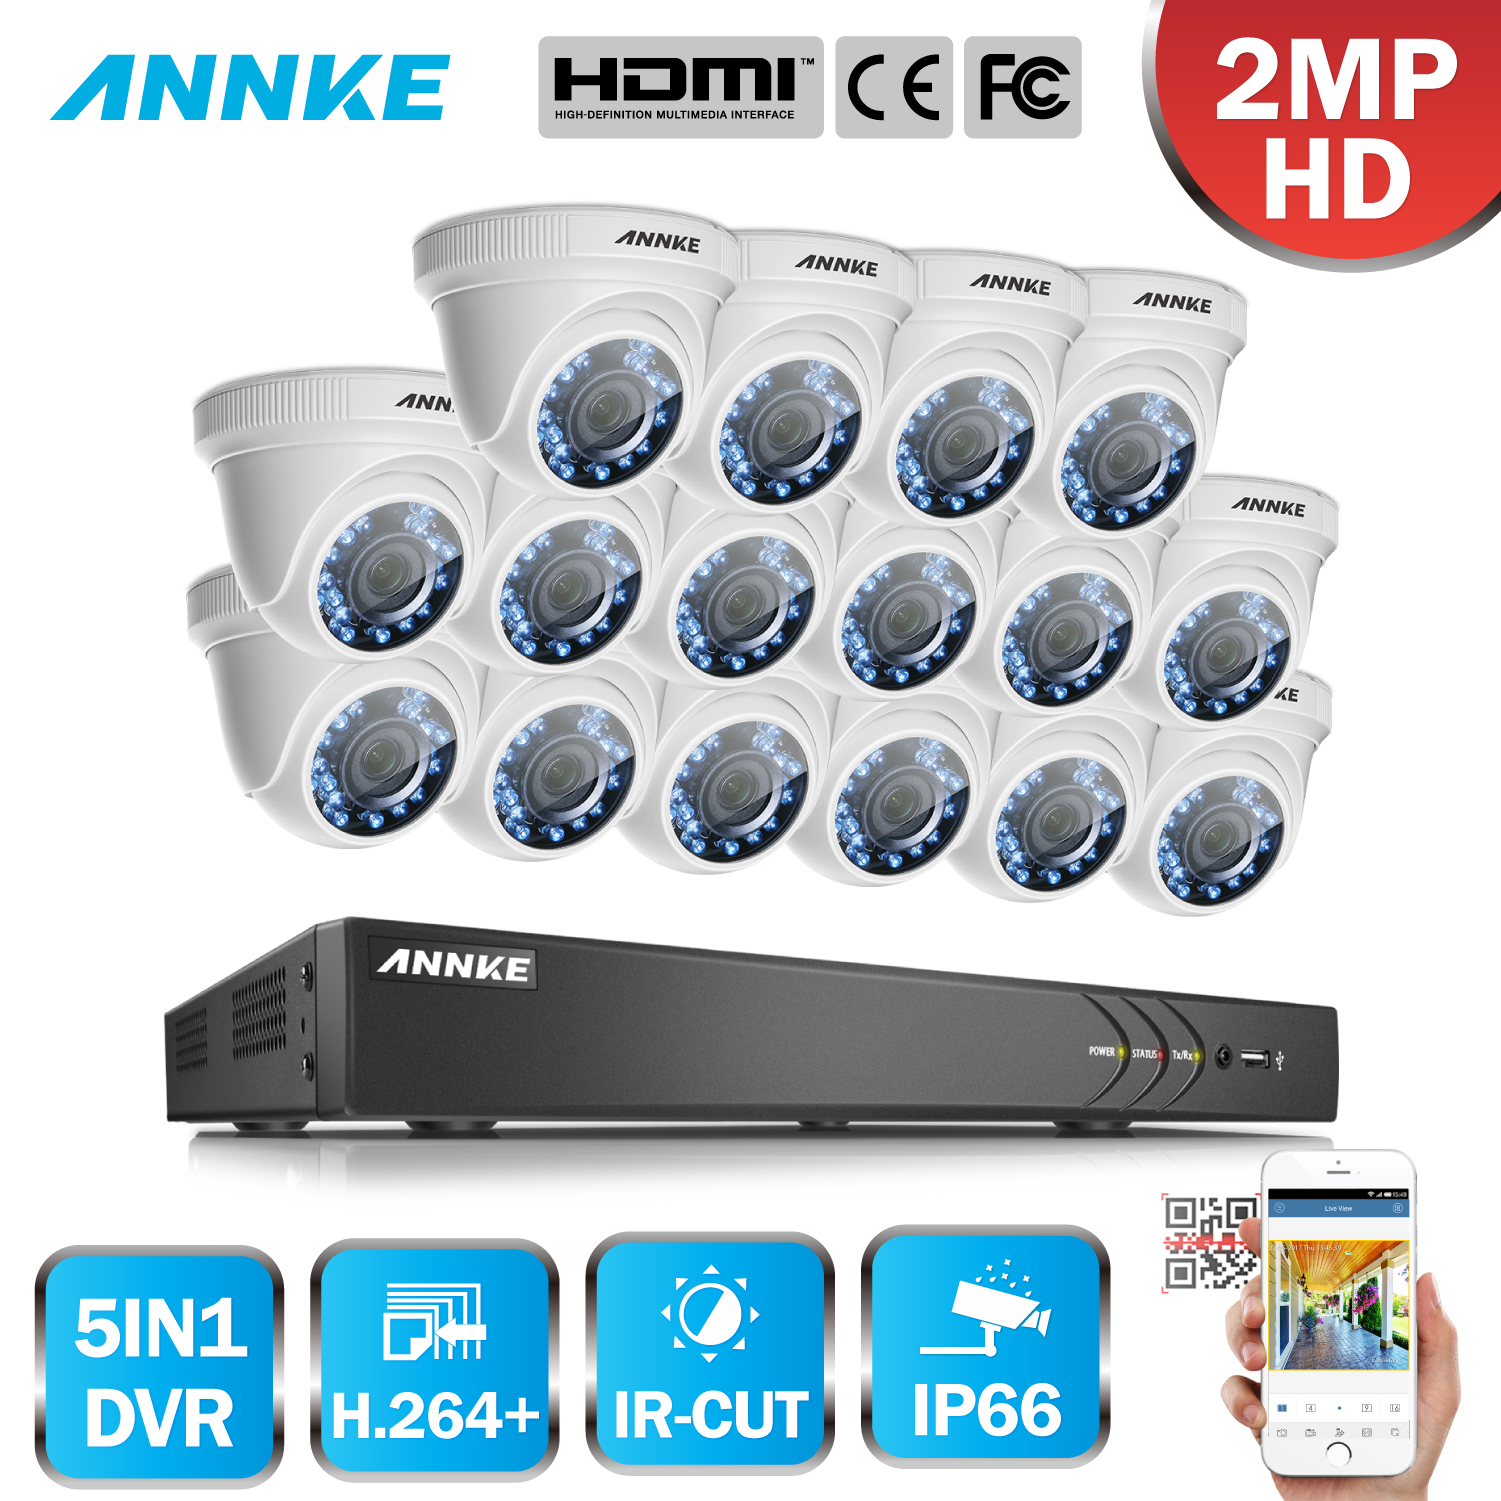 ANNKE 3MP 16CH 5in1 HD TVI CVI AHD Security DVR Recorder With 16pcs 1080P 2MP Outdoor Weatherproof CCTV Cam Surveillance System annke 3mp 4ch hd tvi cvi ahd ip 5in1 dvr vca 2mp hd smart ir day night vision bullet cctv camera video security system 3d dnr